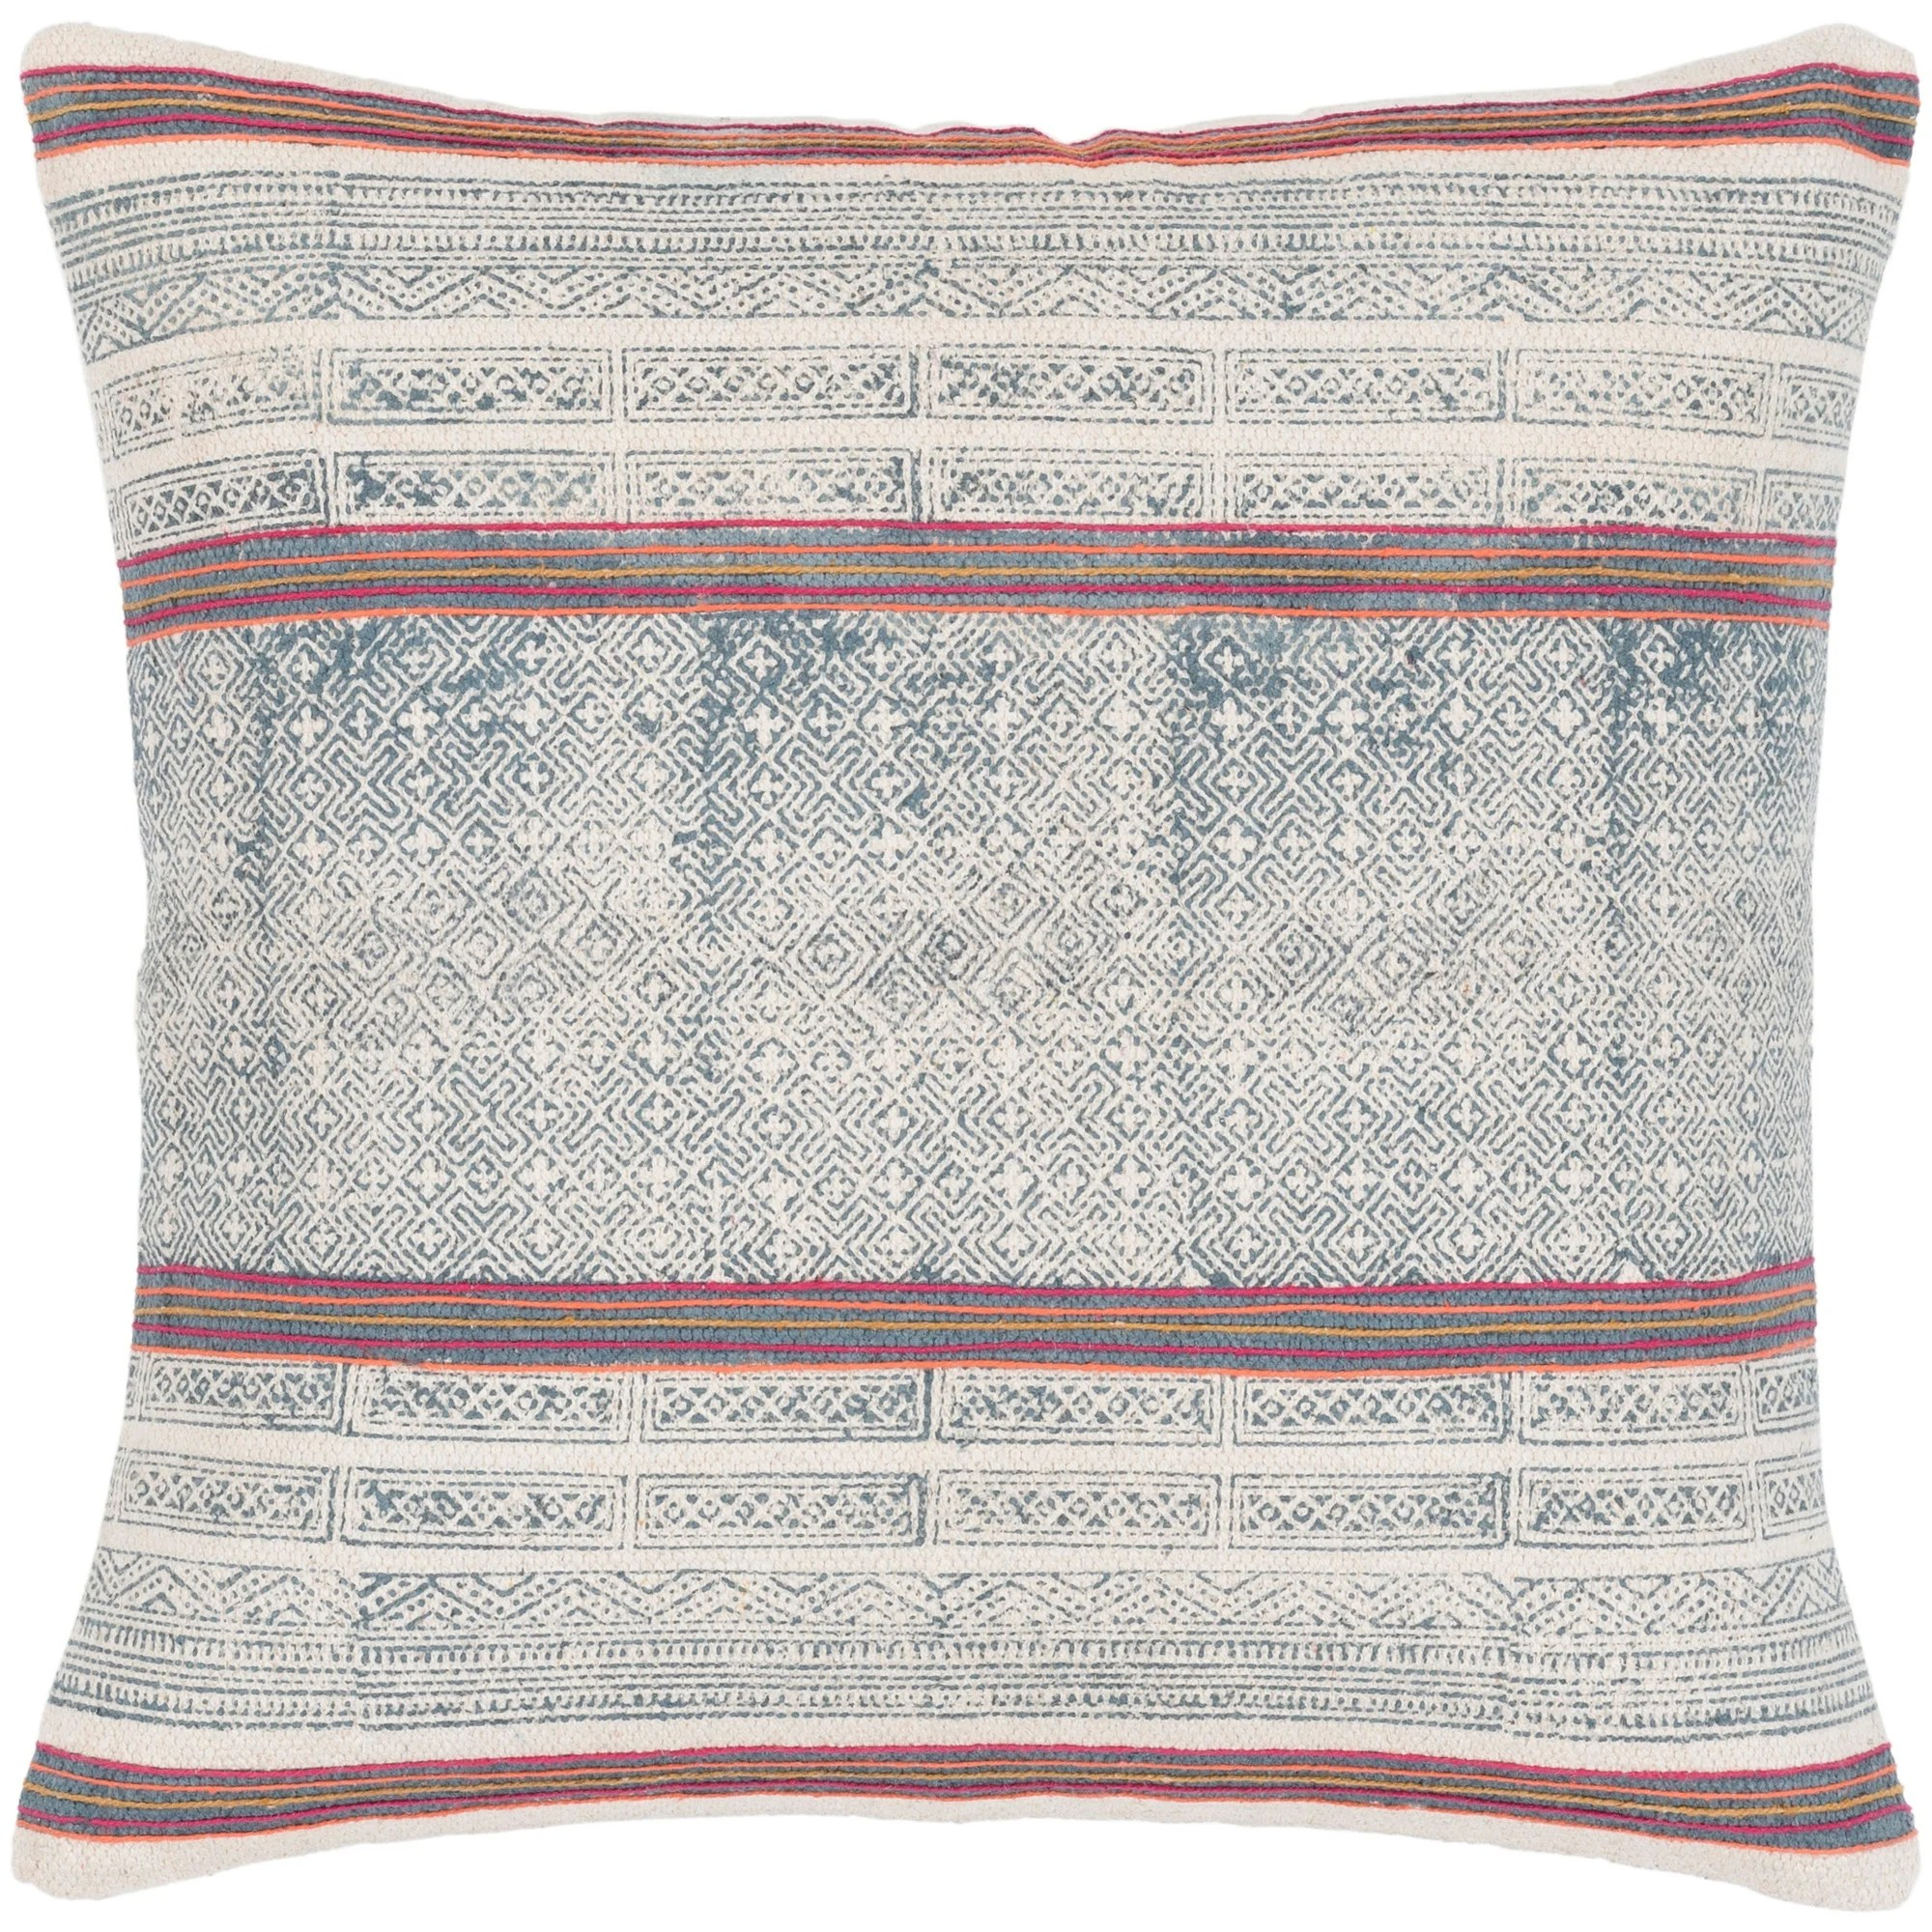 margaret navy pink hand embroidered bohemian throw pillow cover 20 x 20